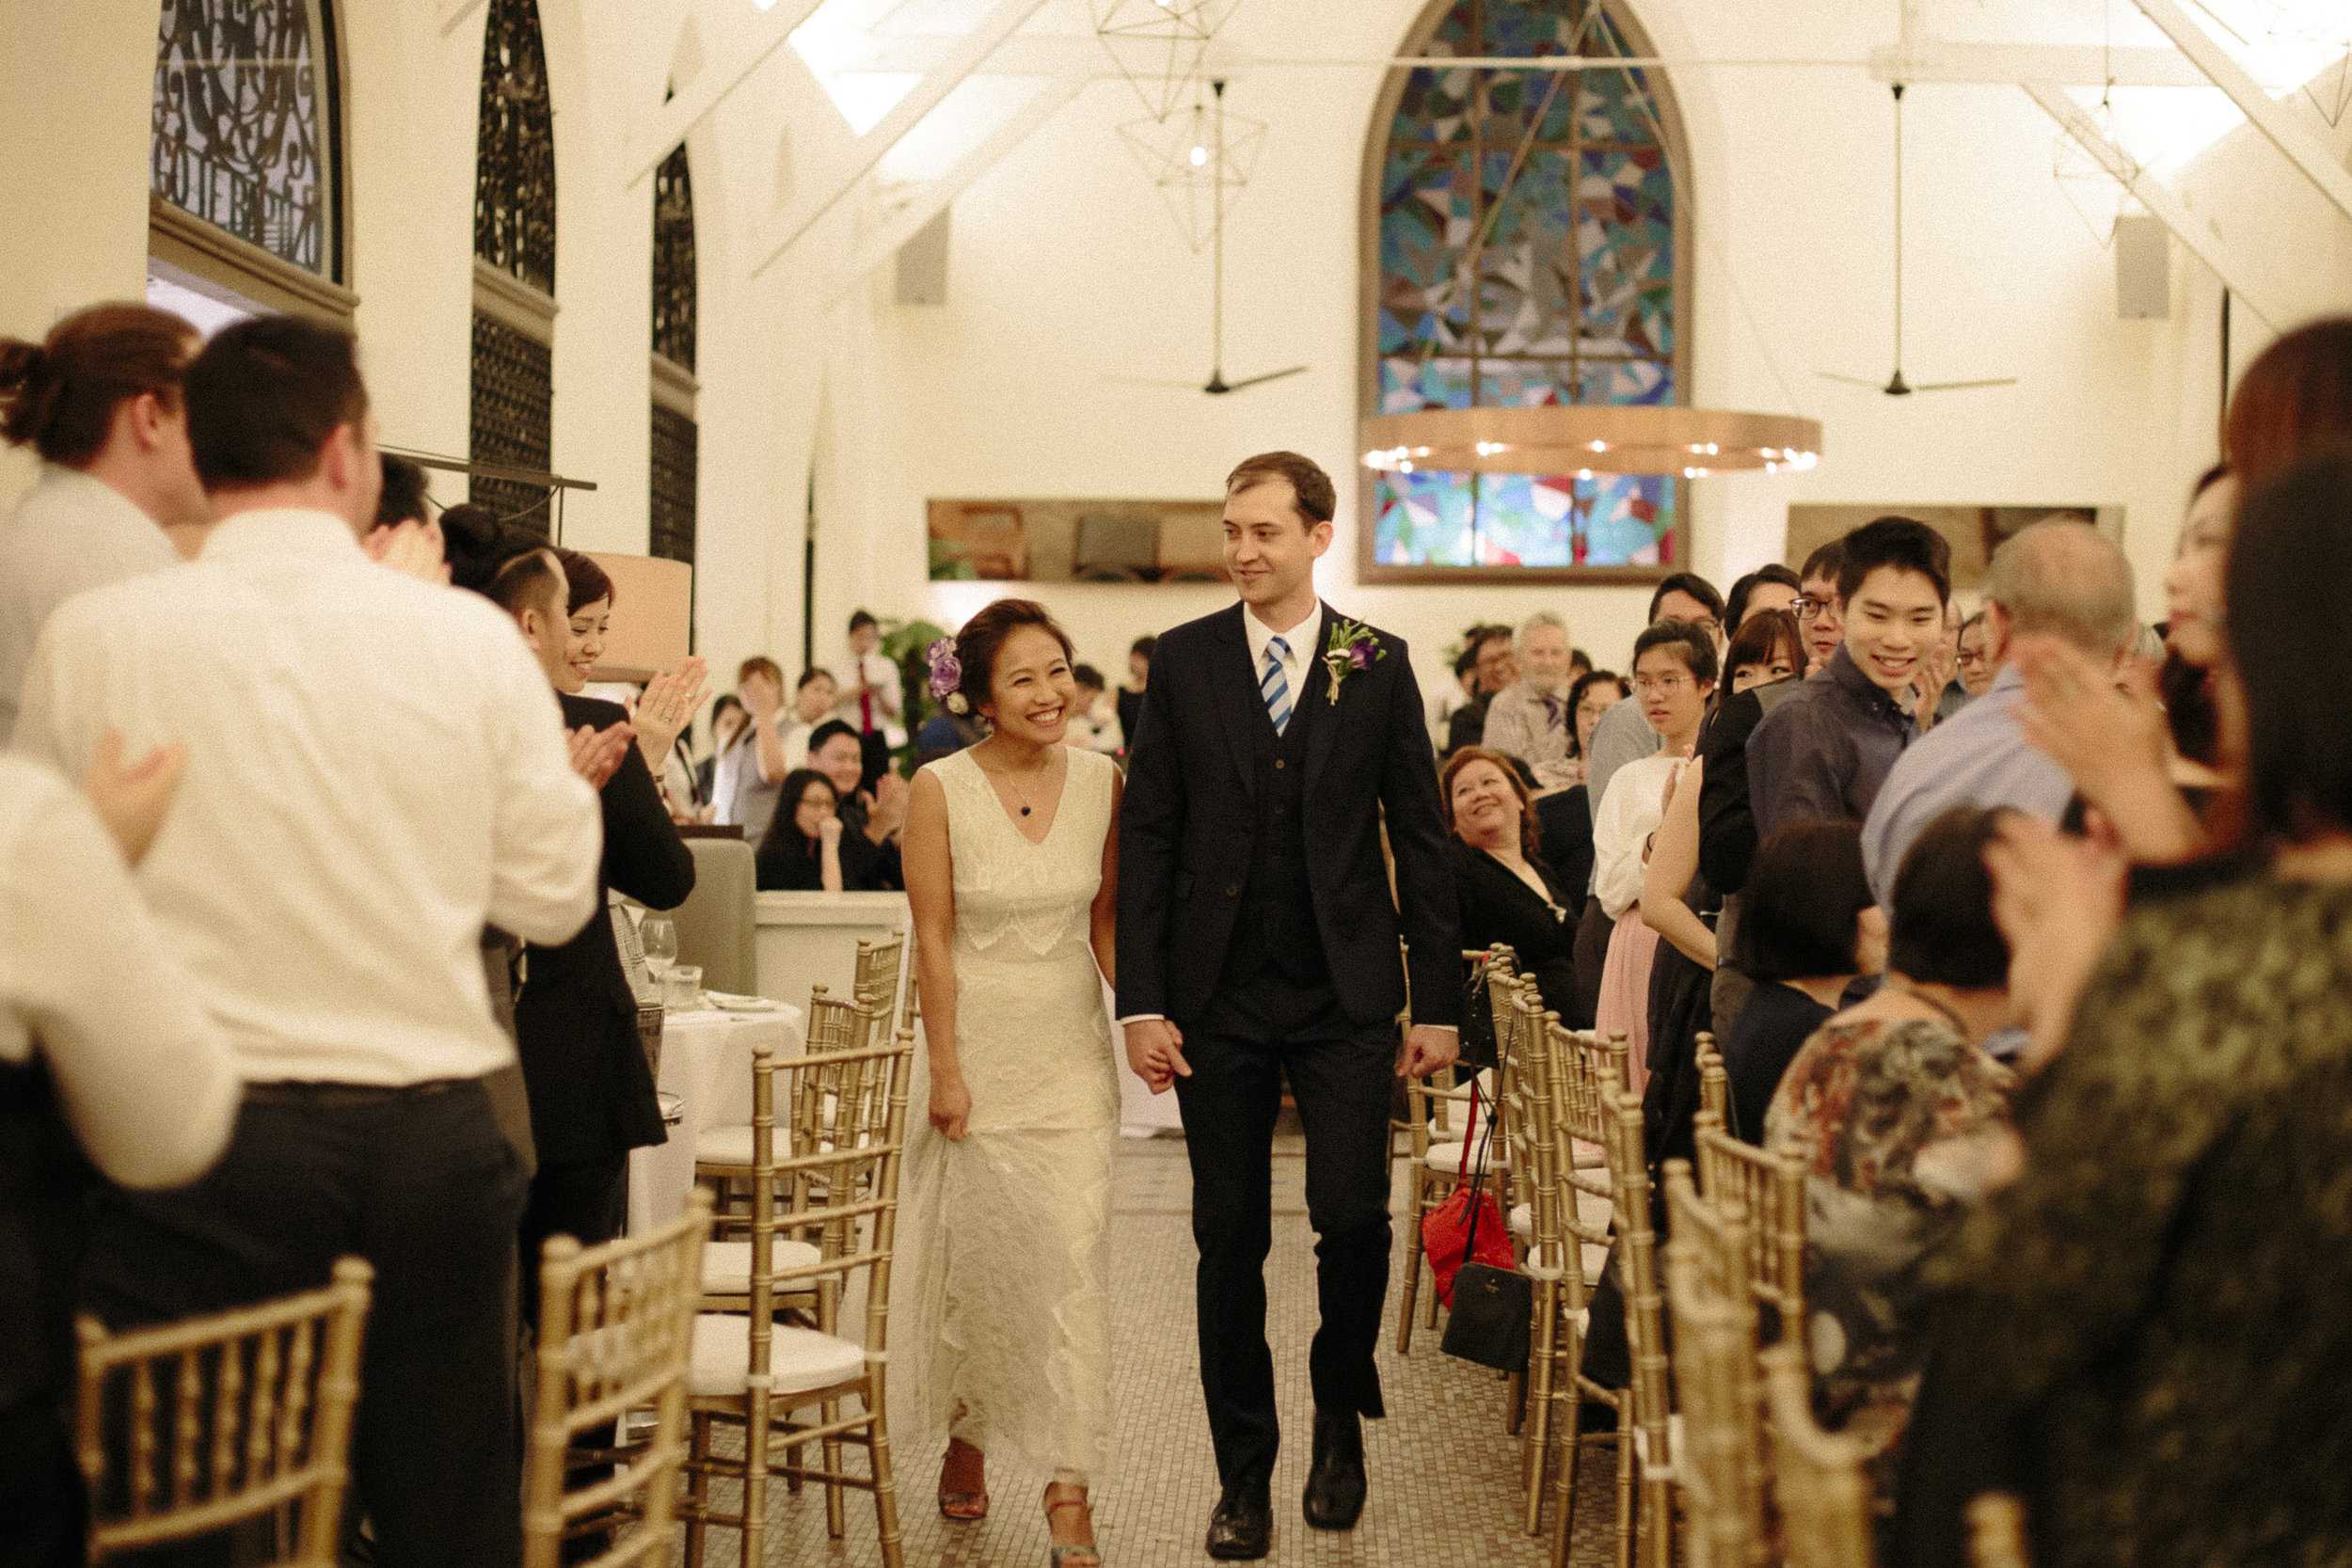 singapore-wedding-photographer-hiram-joyce-059.jpg